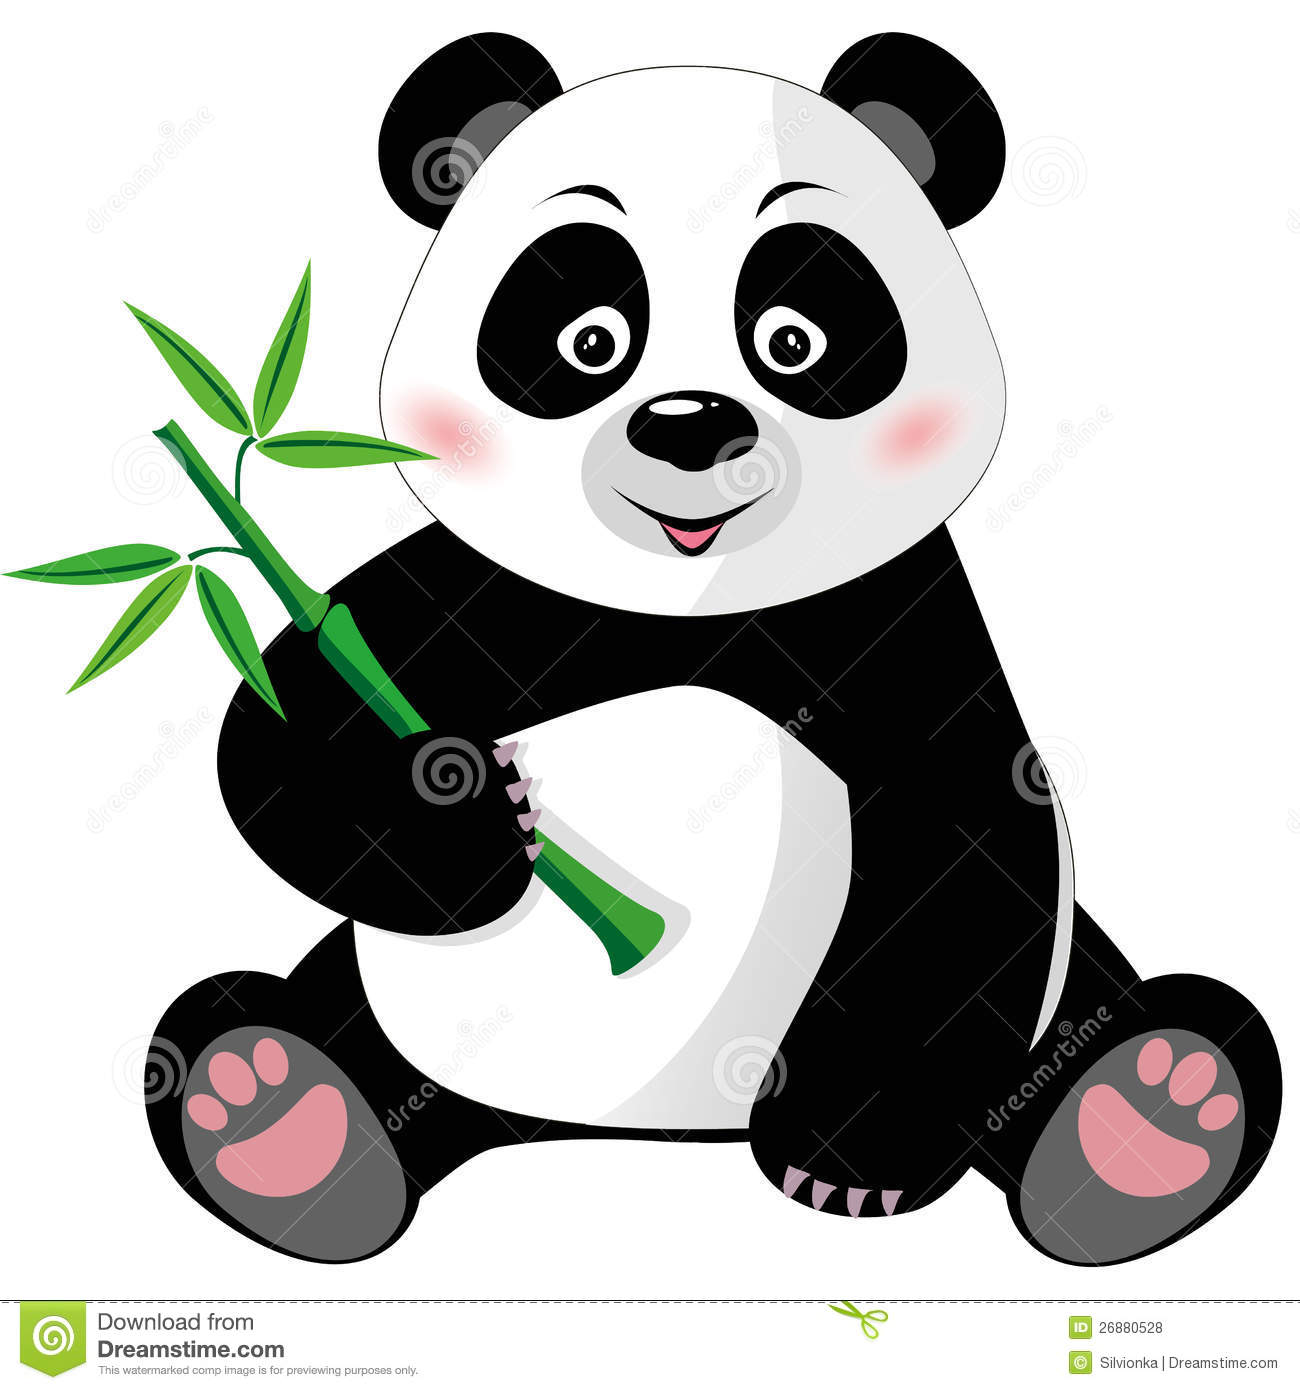 clipart panda cat - photo #43